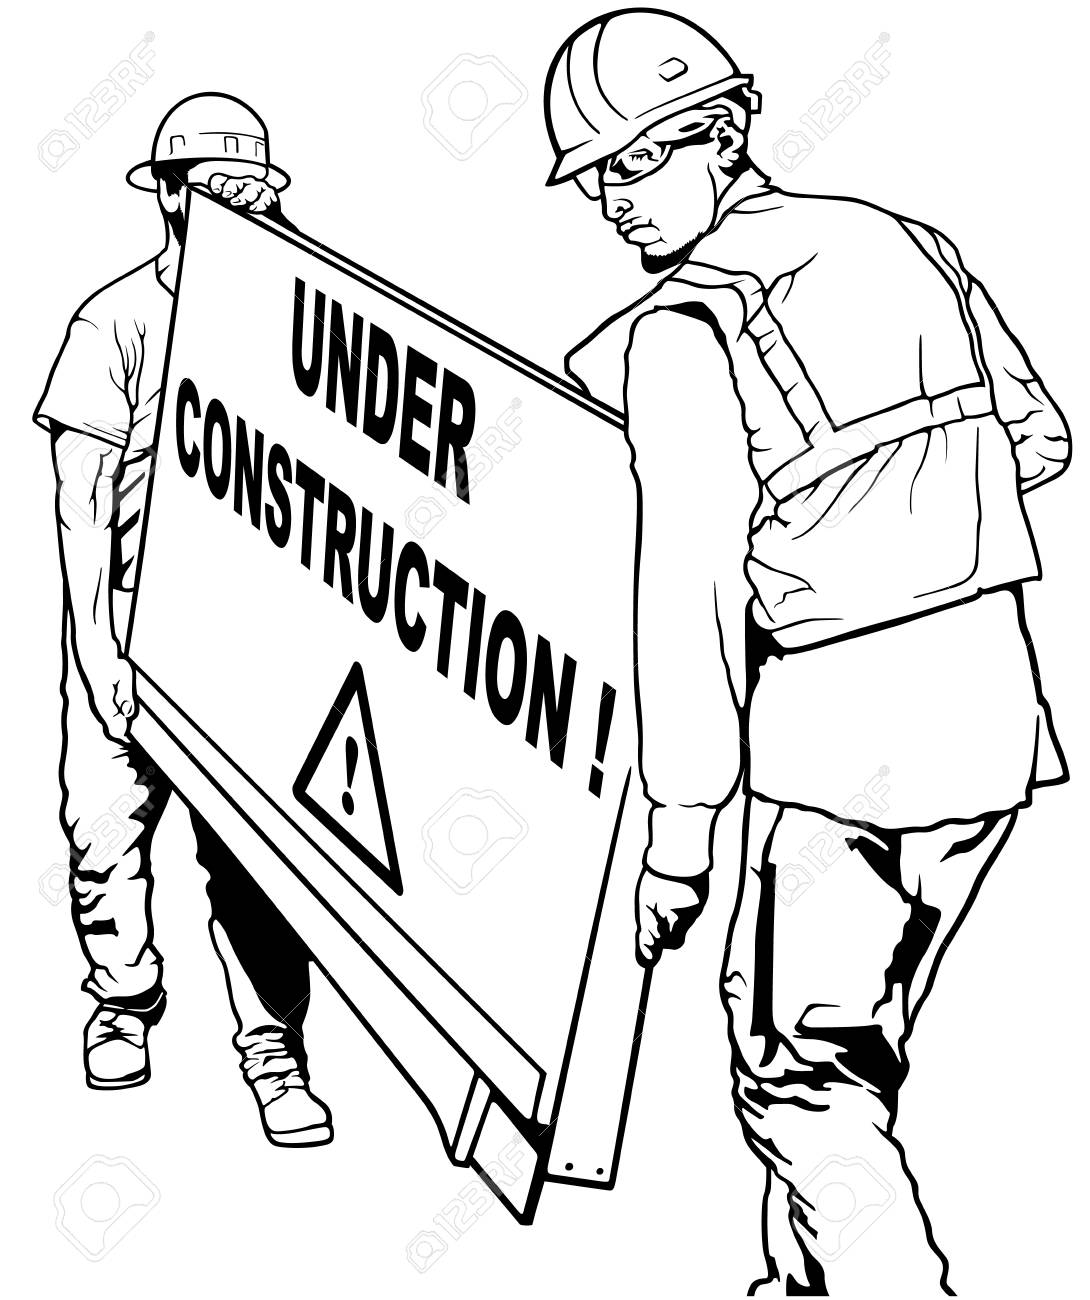 Two Building Workers Carrying Wooden Board with Under Construction...